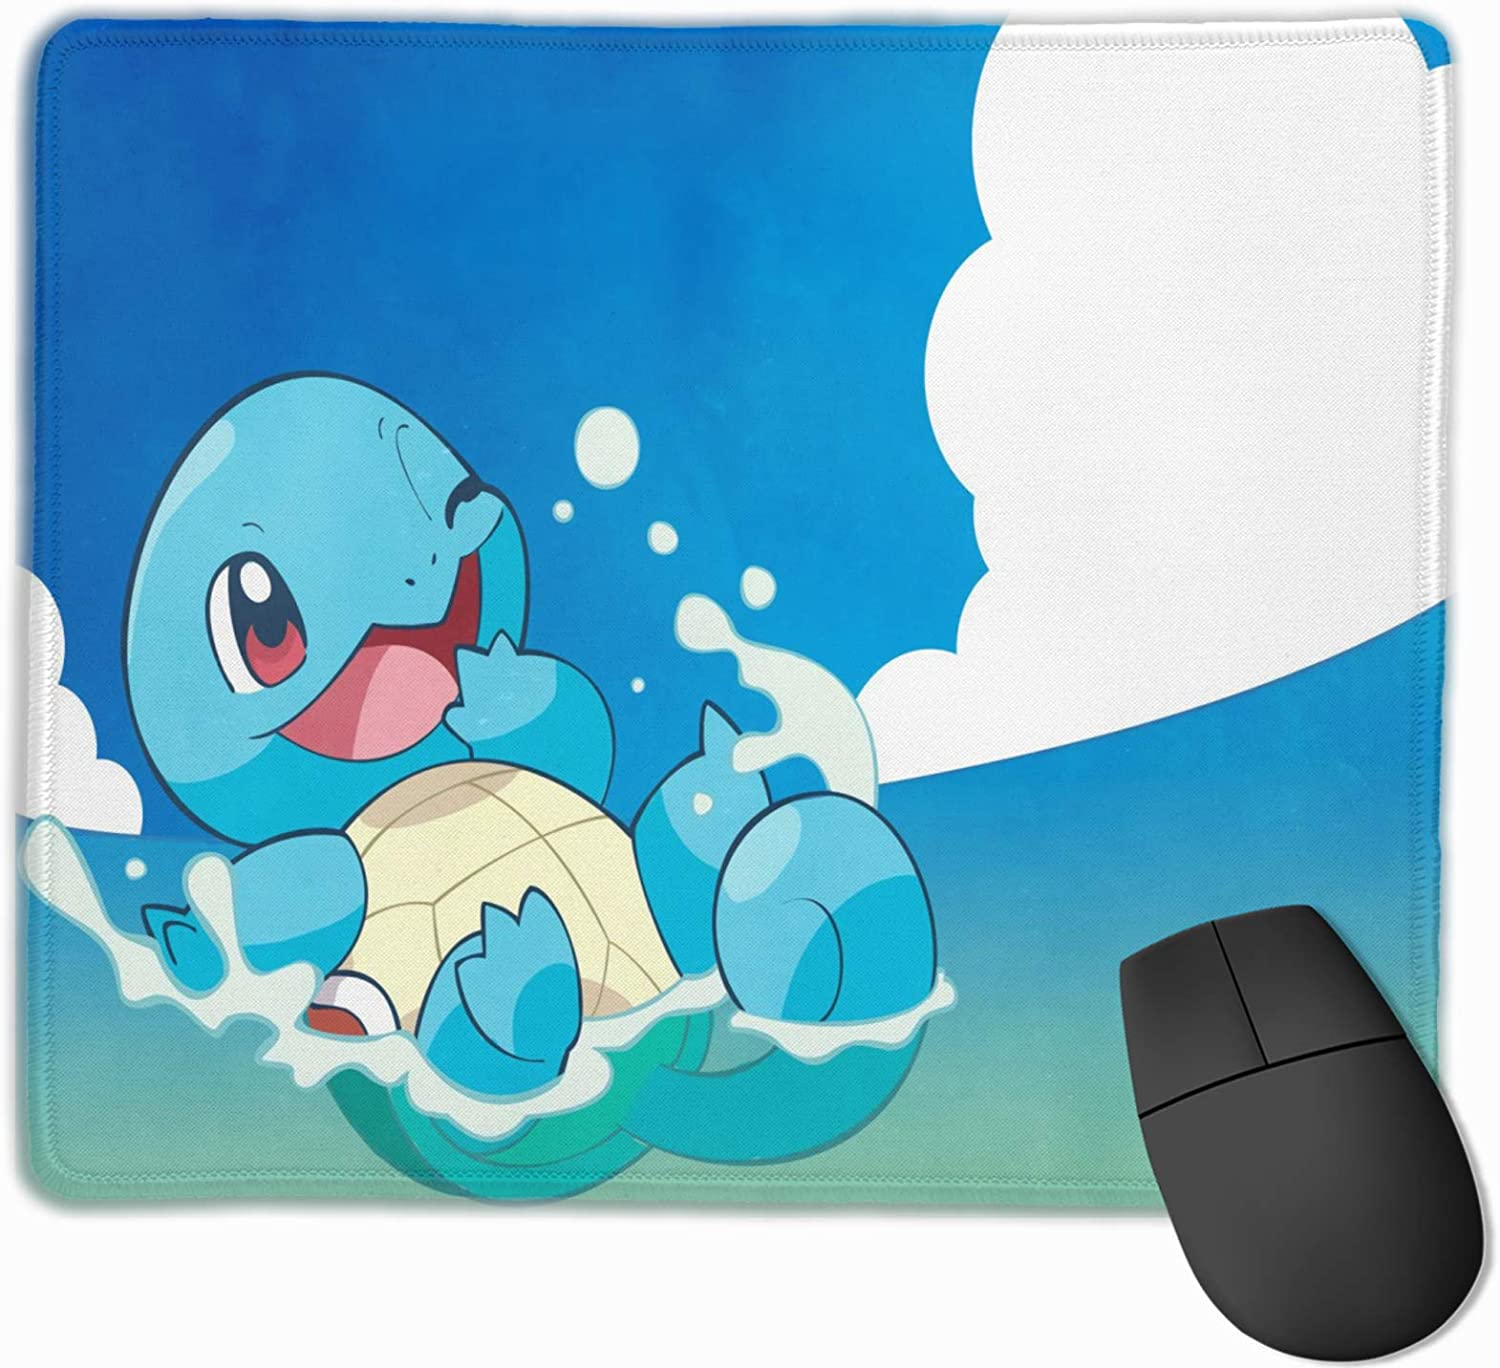 Department store Anime Squir-tle Mouse Pad Blue Base Rubber Stit Anti-Skid Quantity limited with